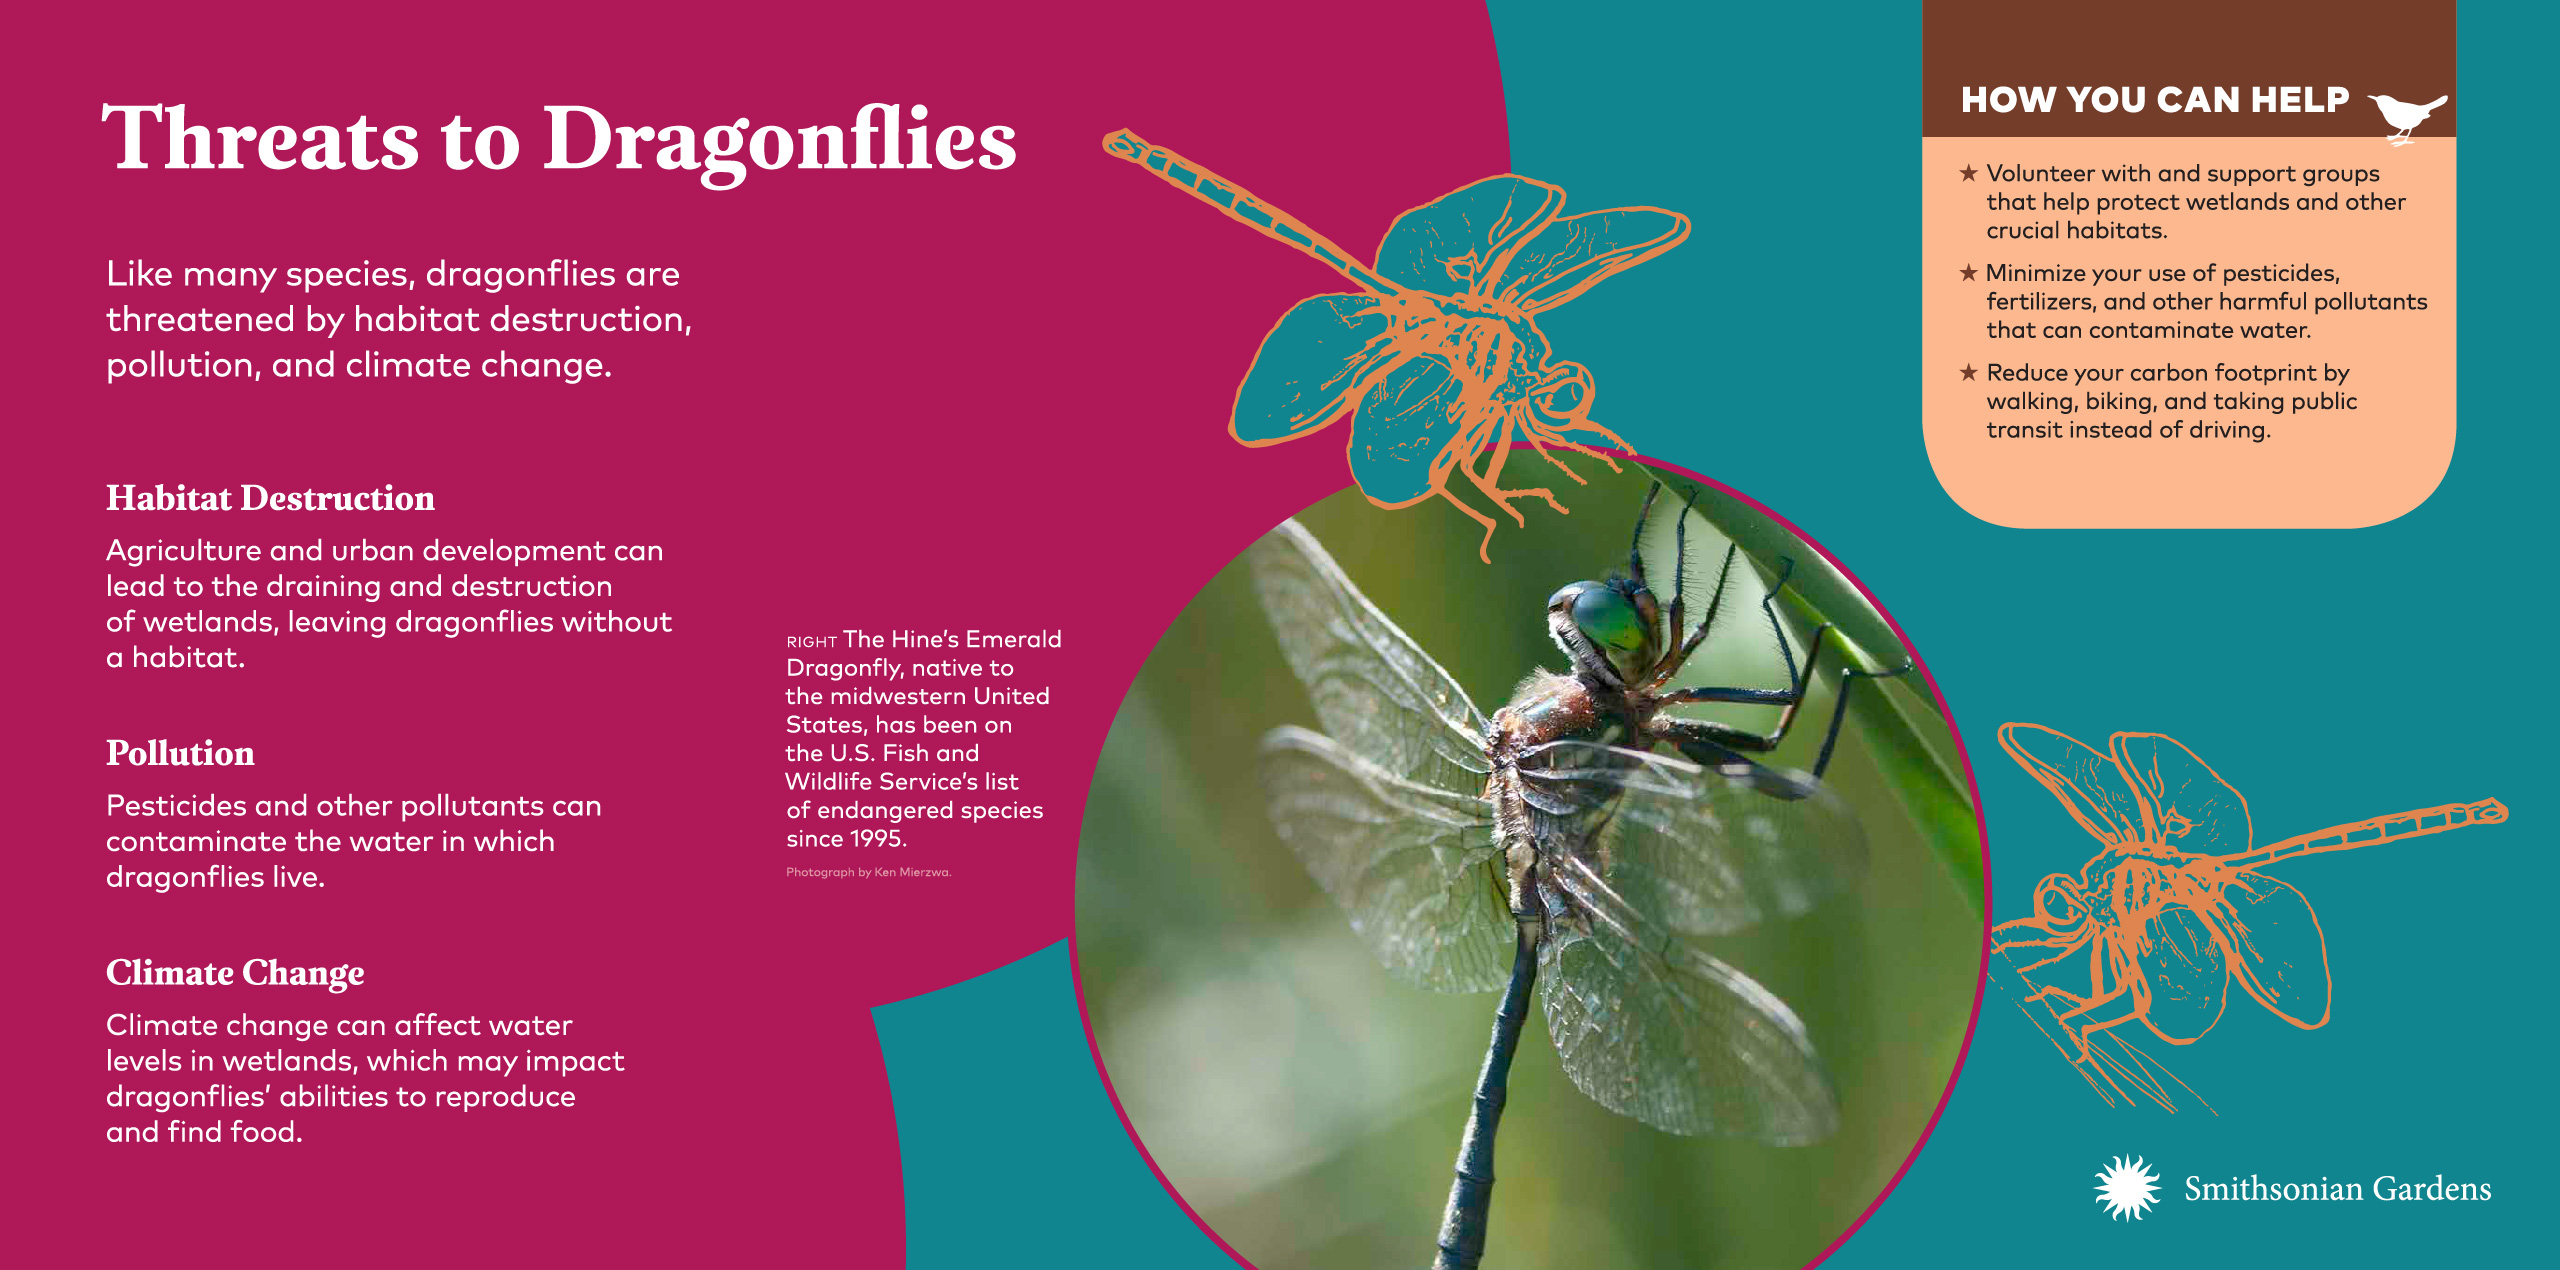 Threats to Dragonflies exhibit panel